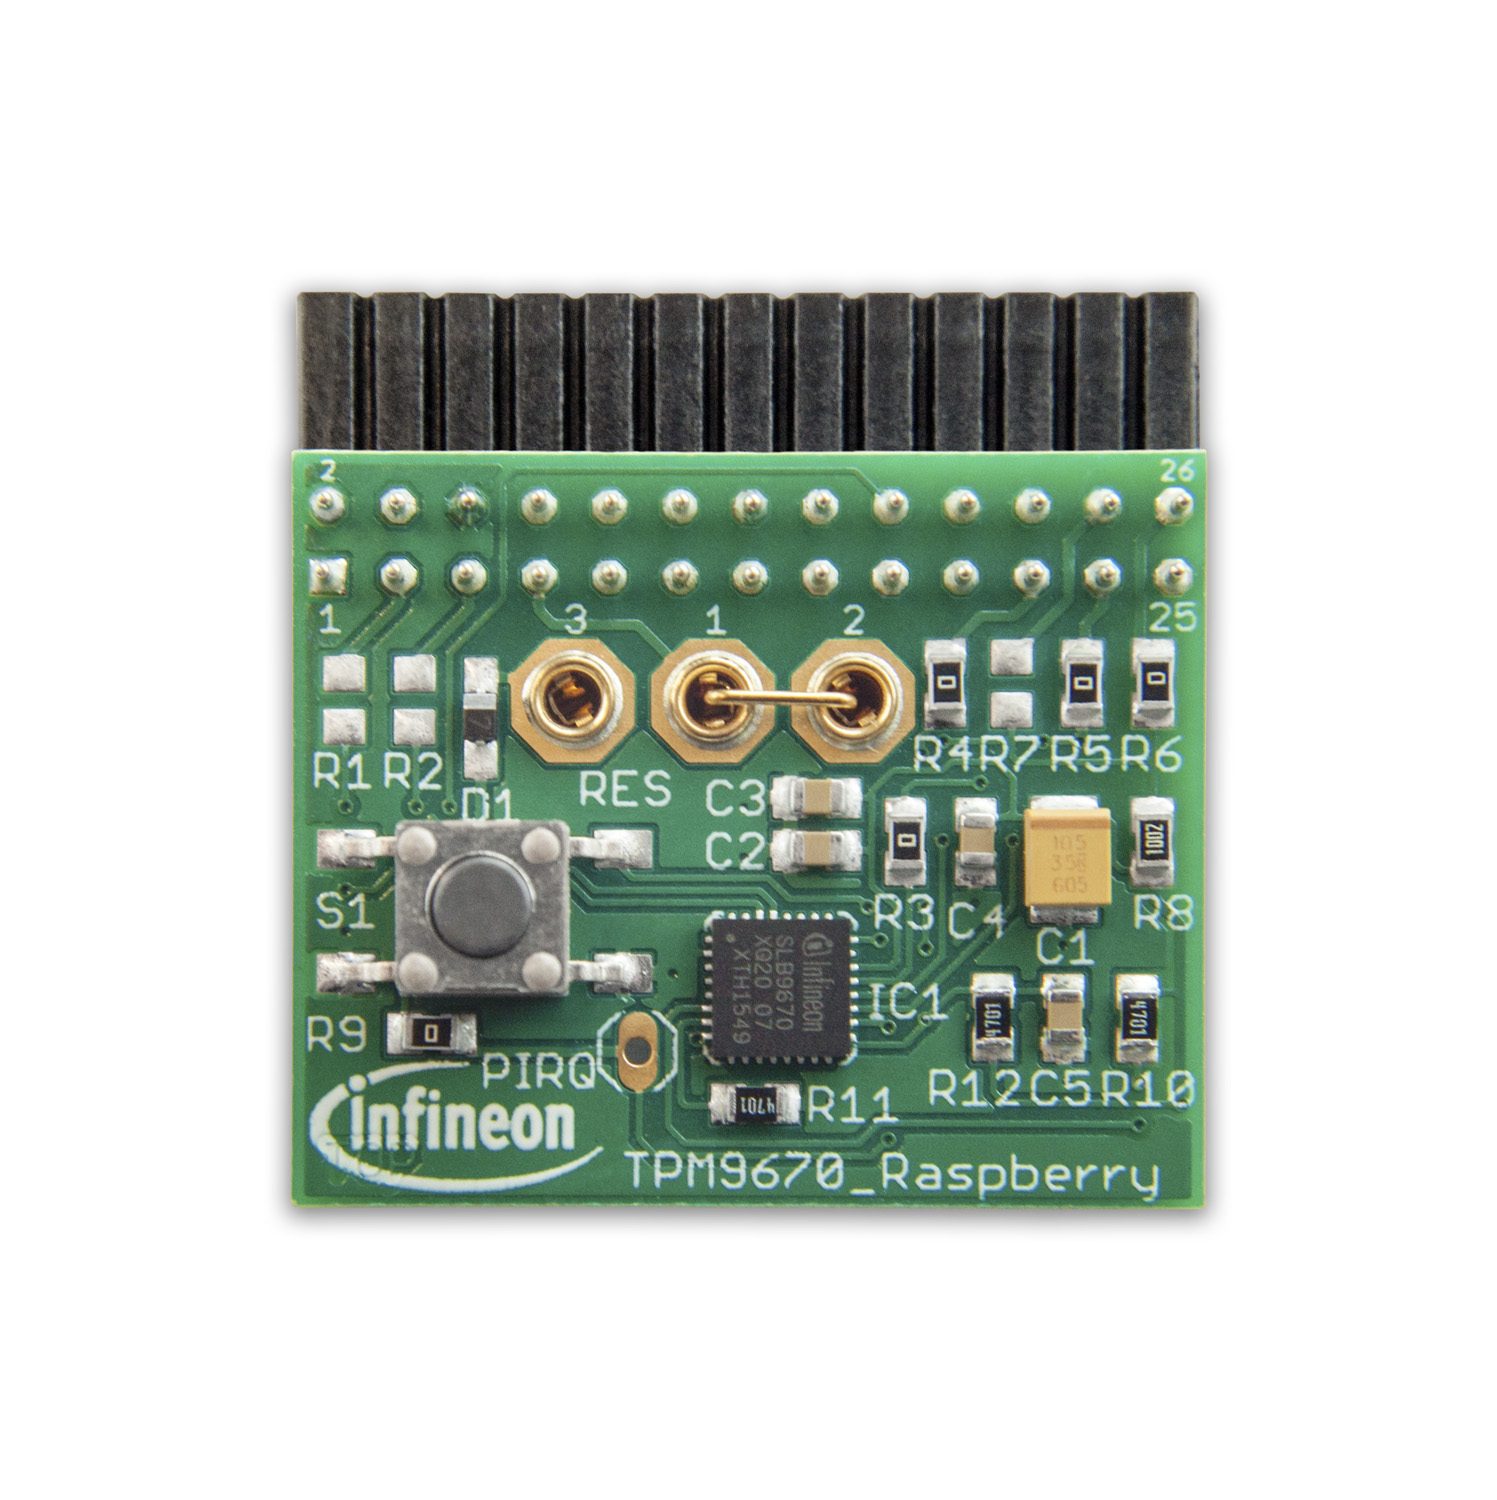 Infineon strengthens its solution offering for cloud applications as